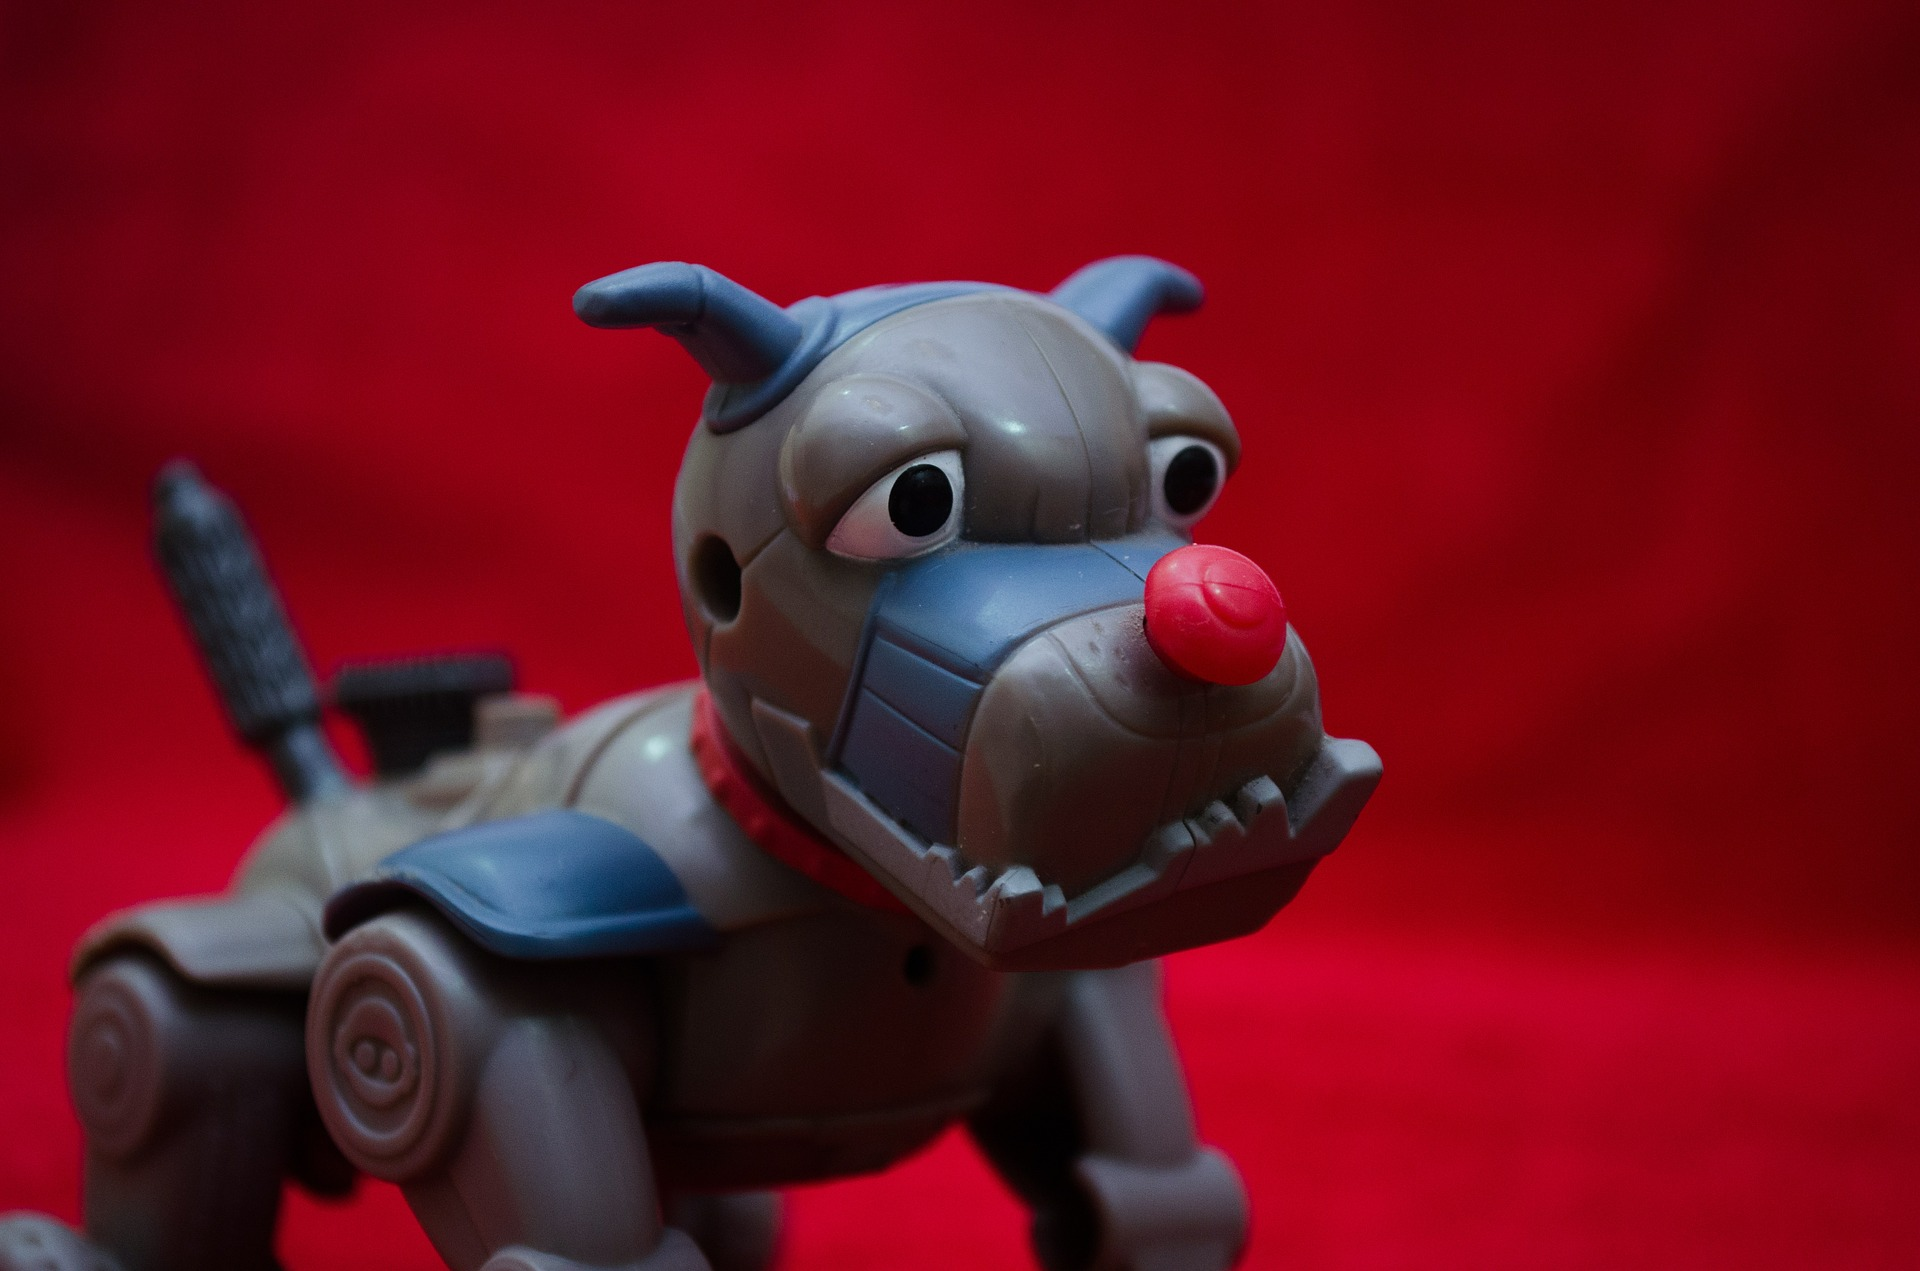 Toy robot dog